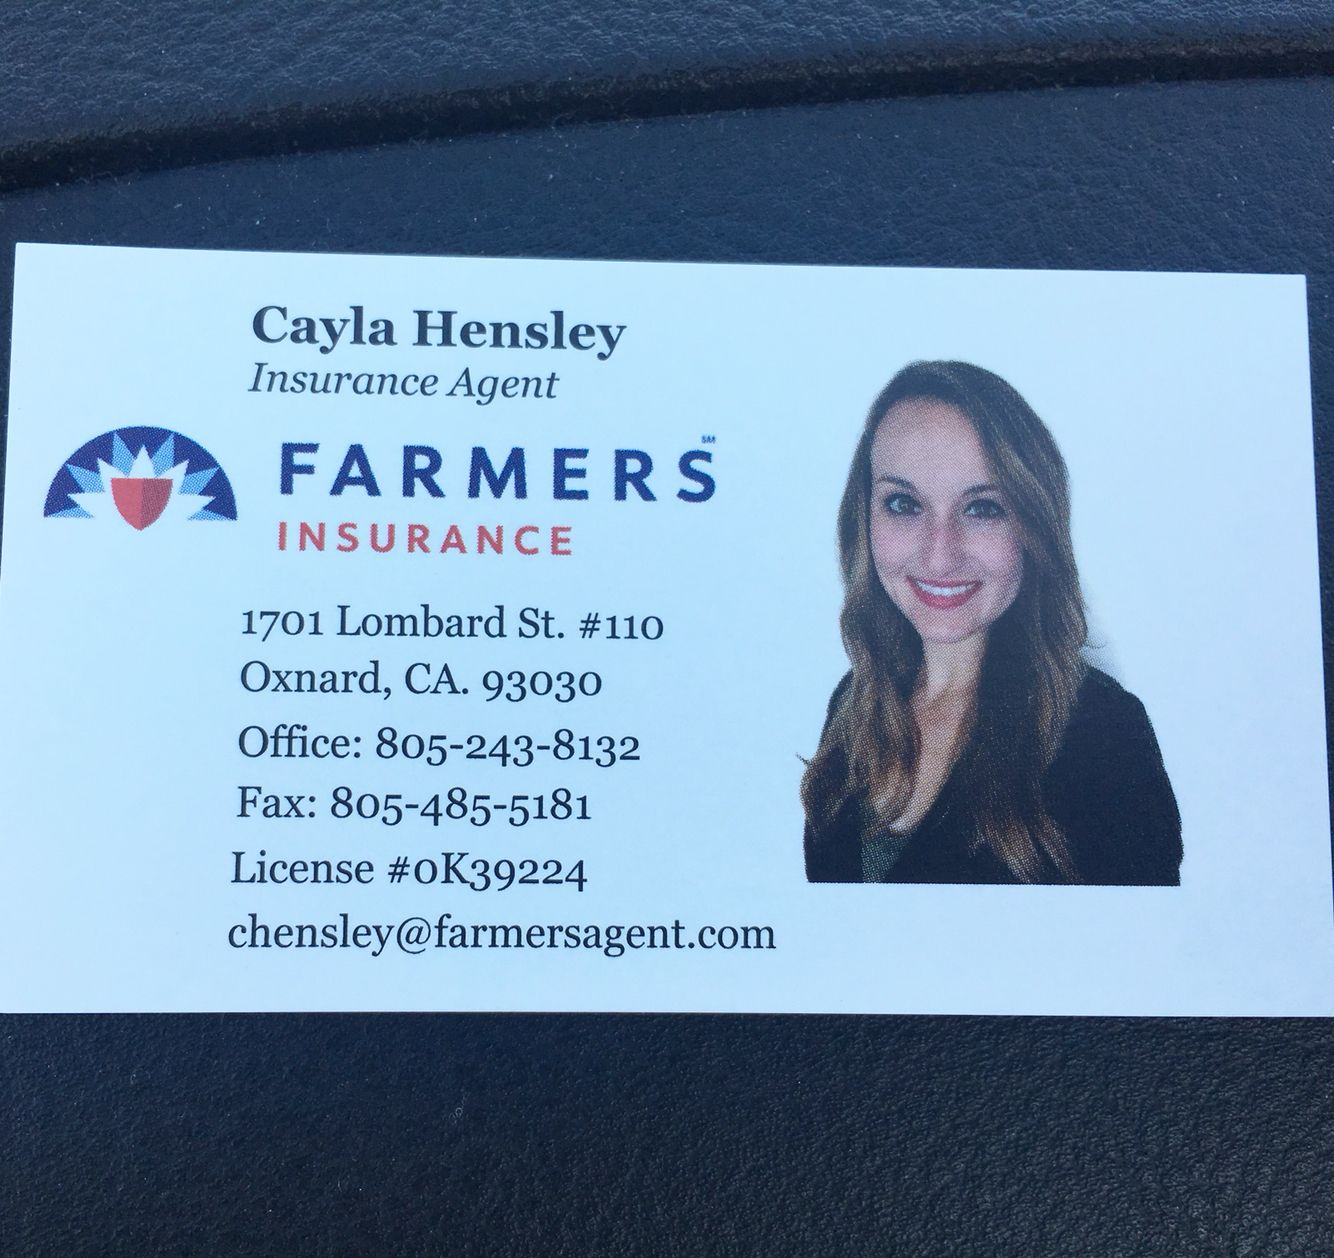 Got My Business Cards Today Wearefarmers Farmersinsurance Insurance Business Businesscards Newcards L Farmers Insurance Positive Life Insurance Agent